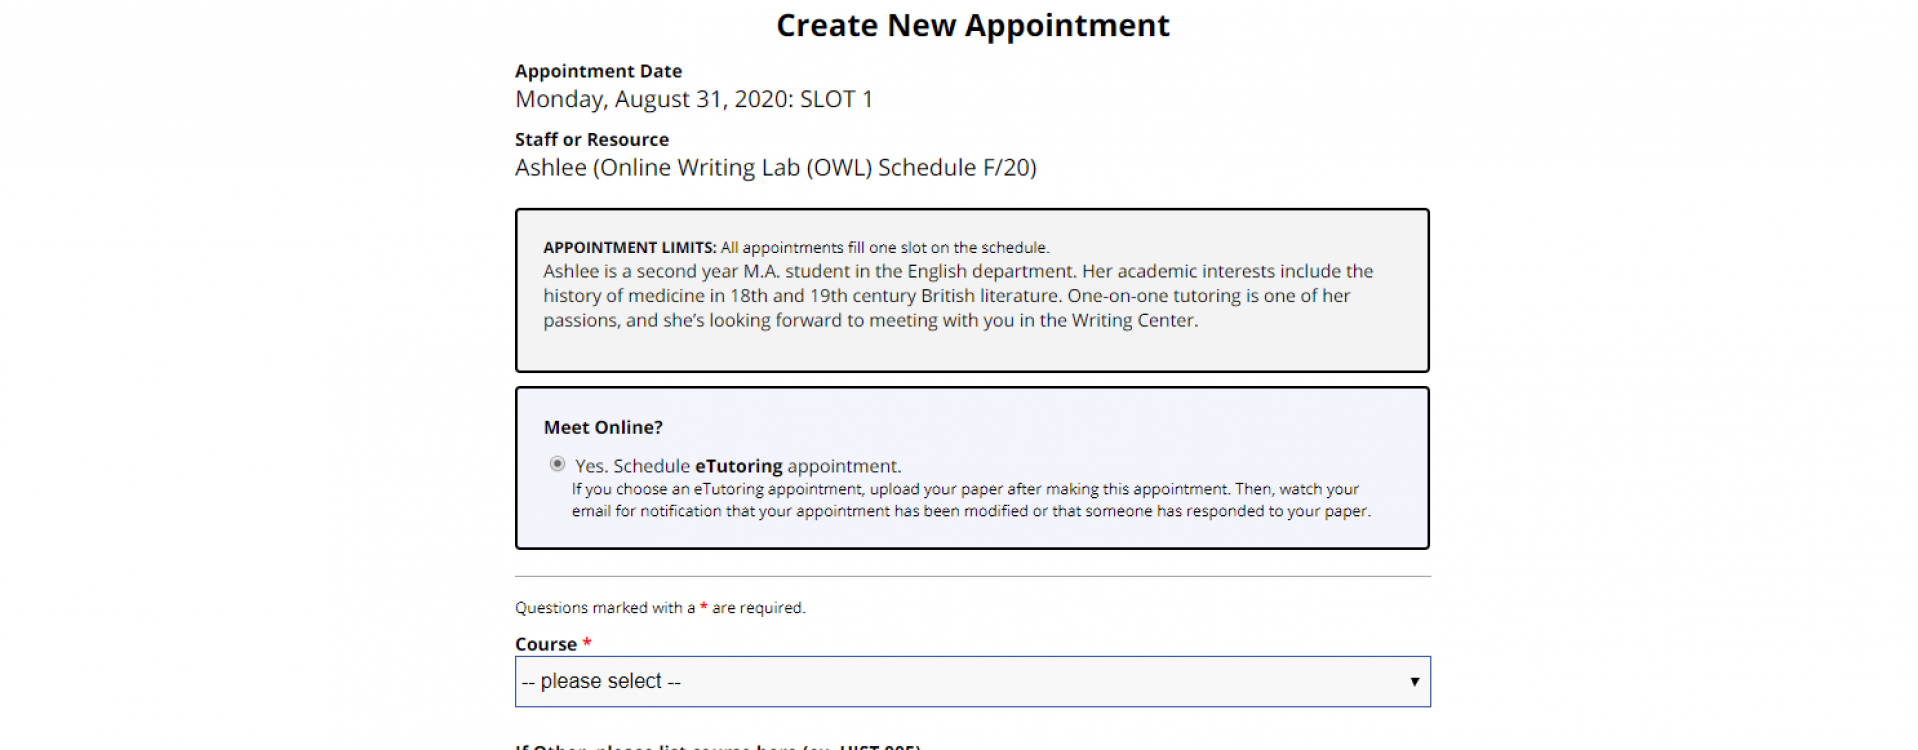 An image of the Appointment Form for the OWL Schedule.